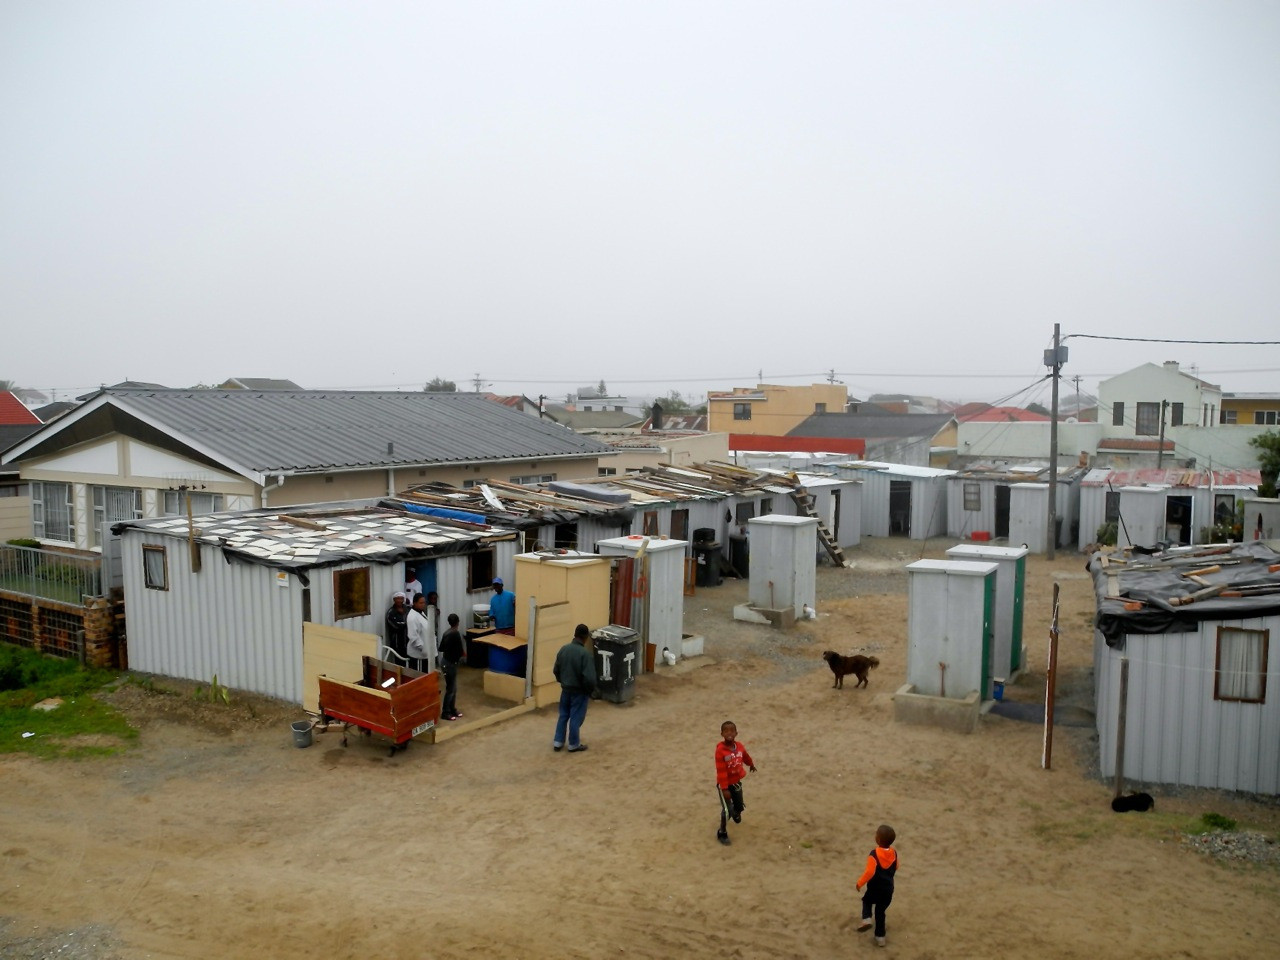 Cape Town Adopts Re-Blocking Strategy for Informal Settlements